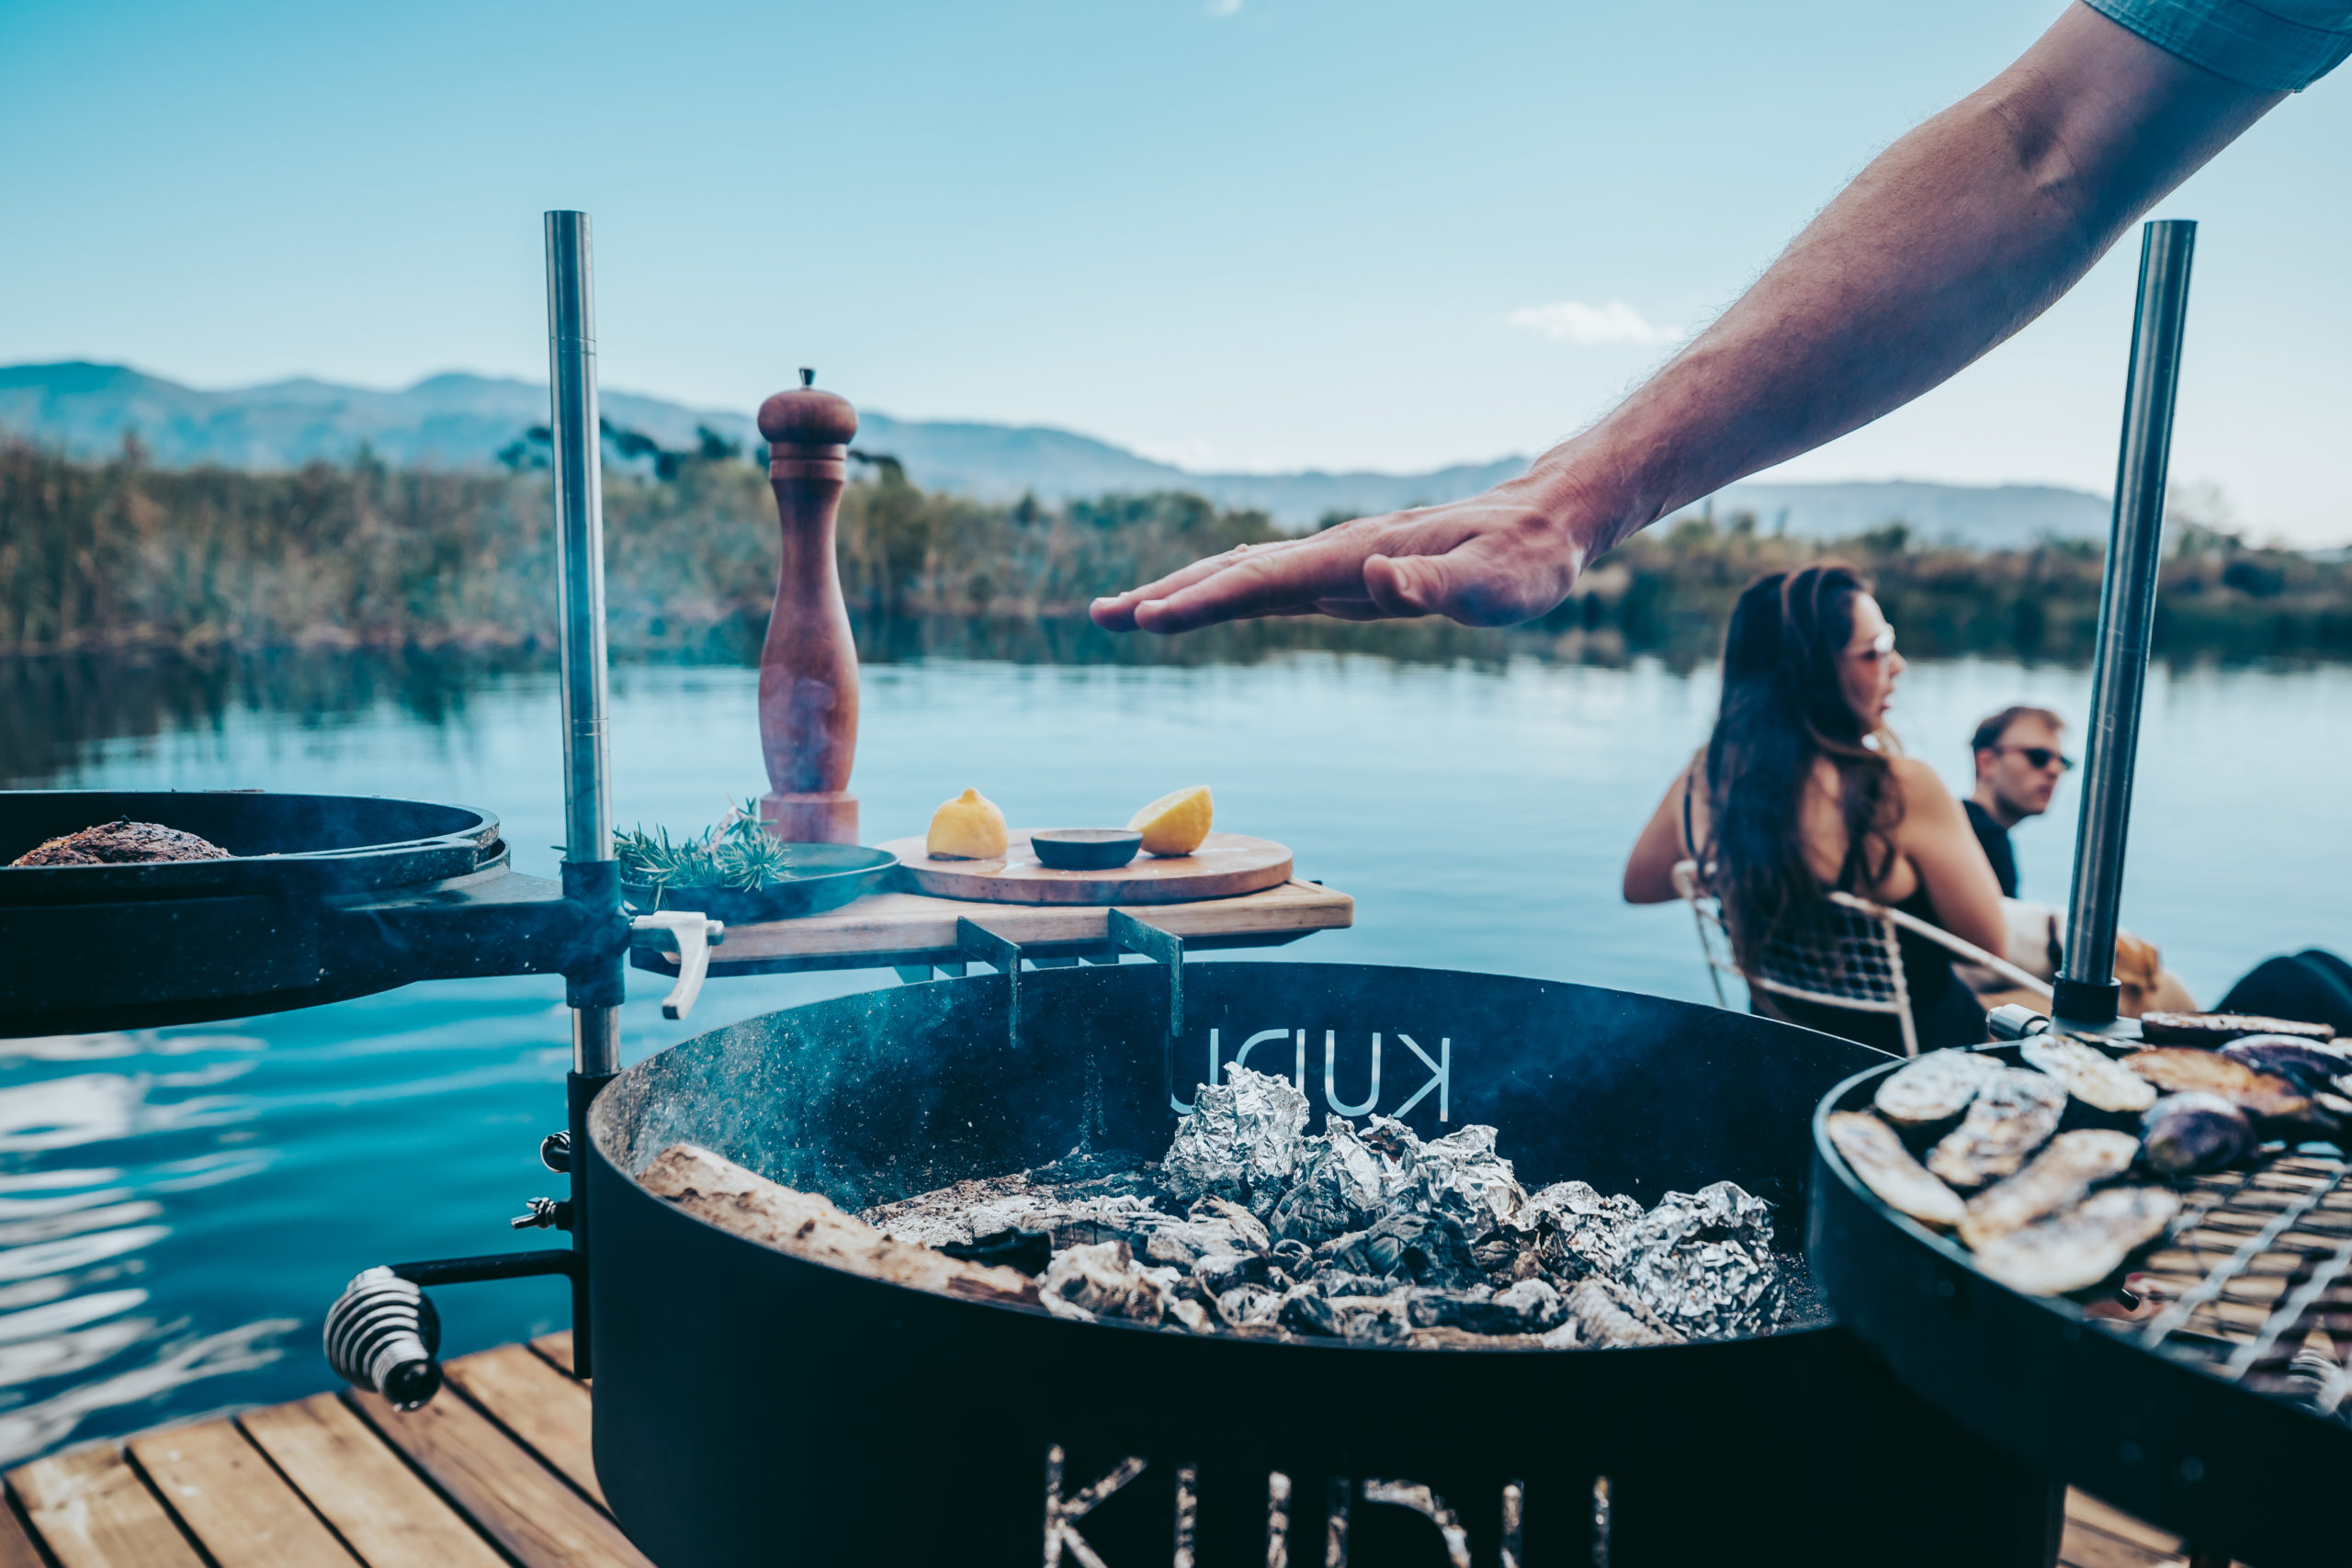 KUDU cooking grill with coals ready to grilll